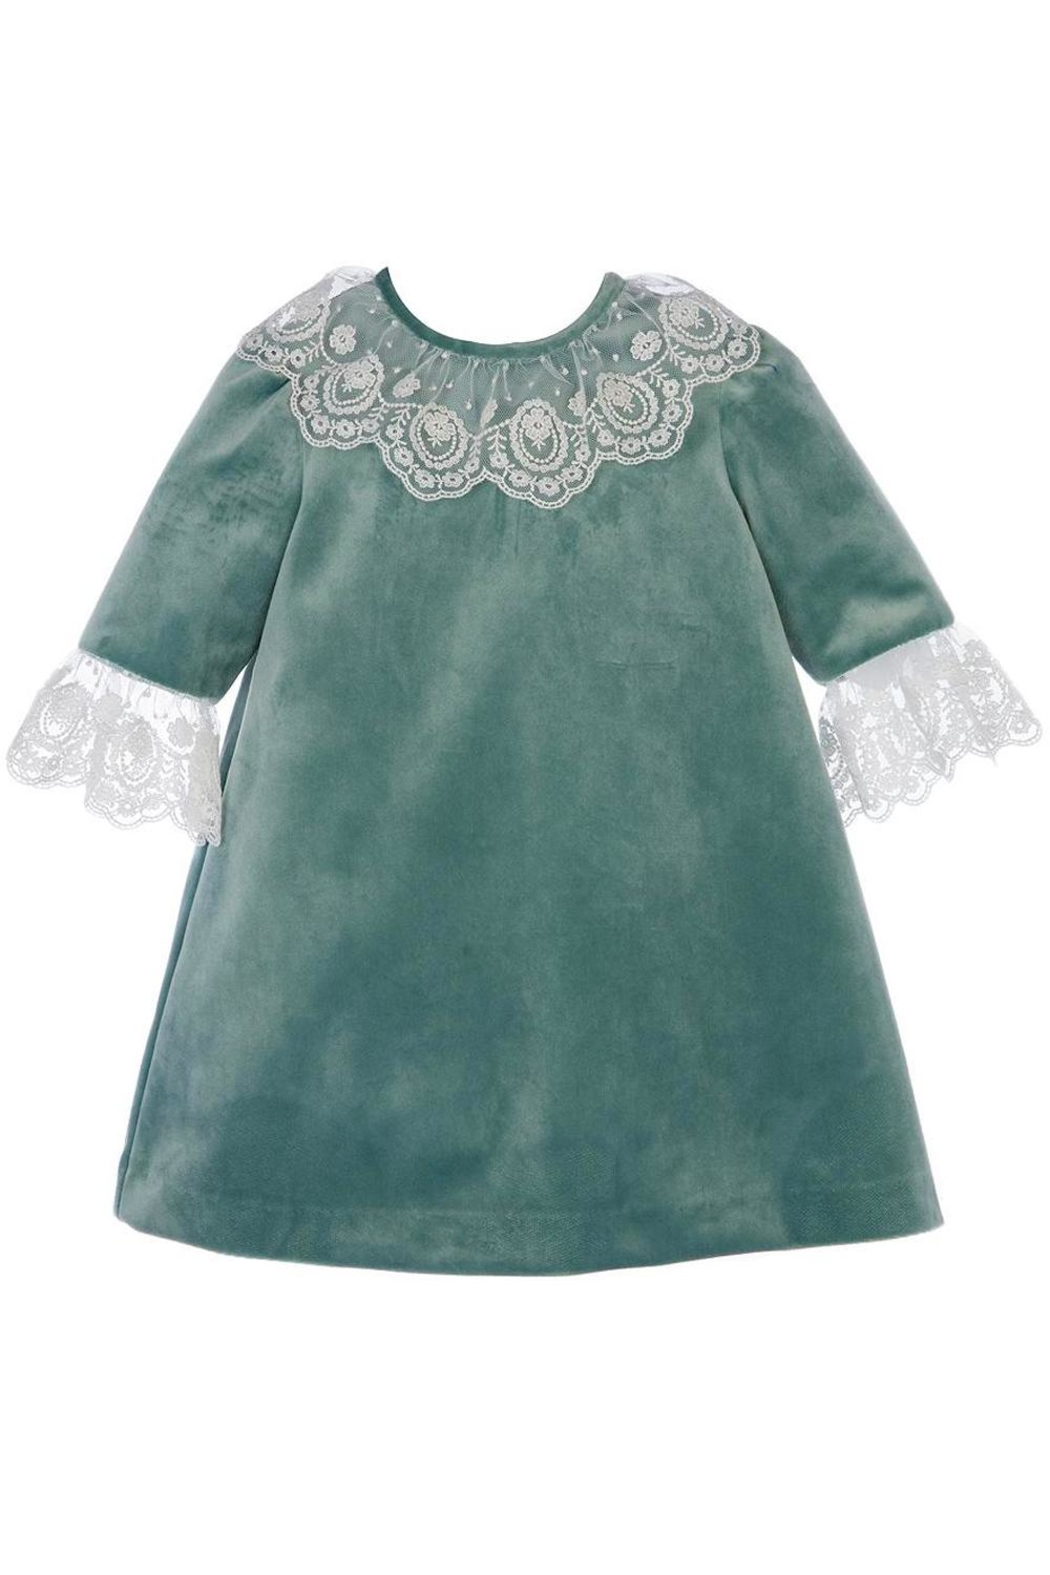 Luli & Me Green-Velvet Dress & Lace - Front Full Image